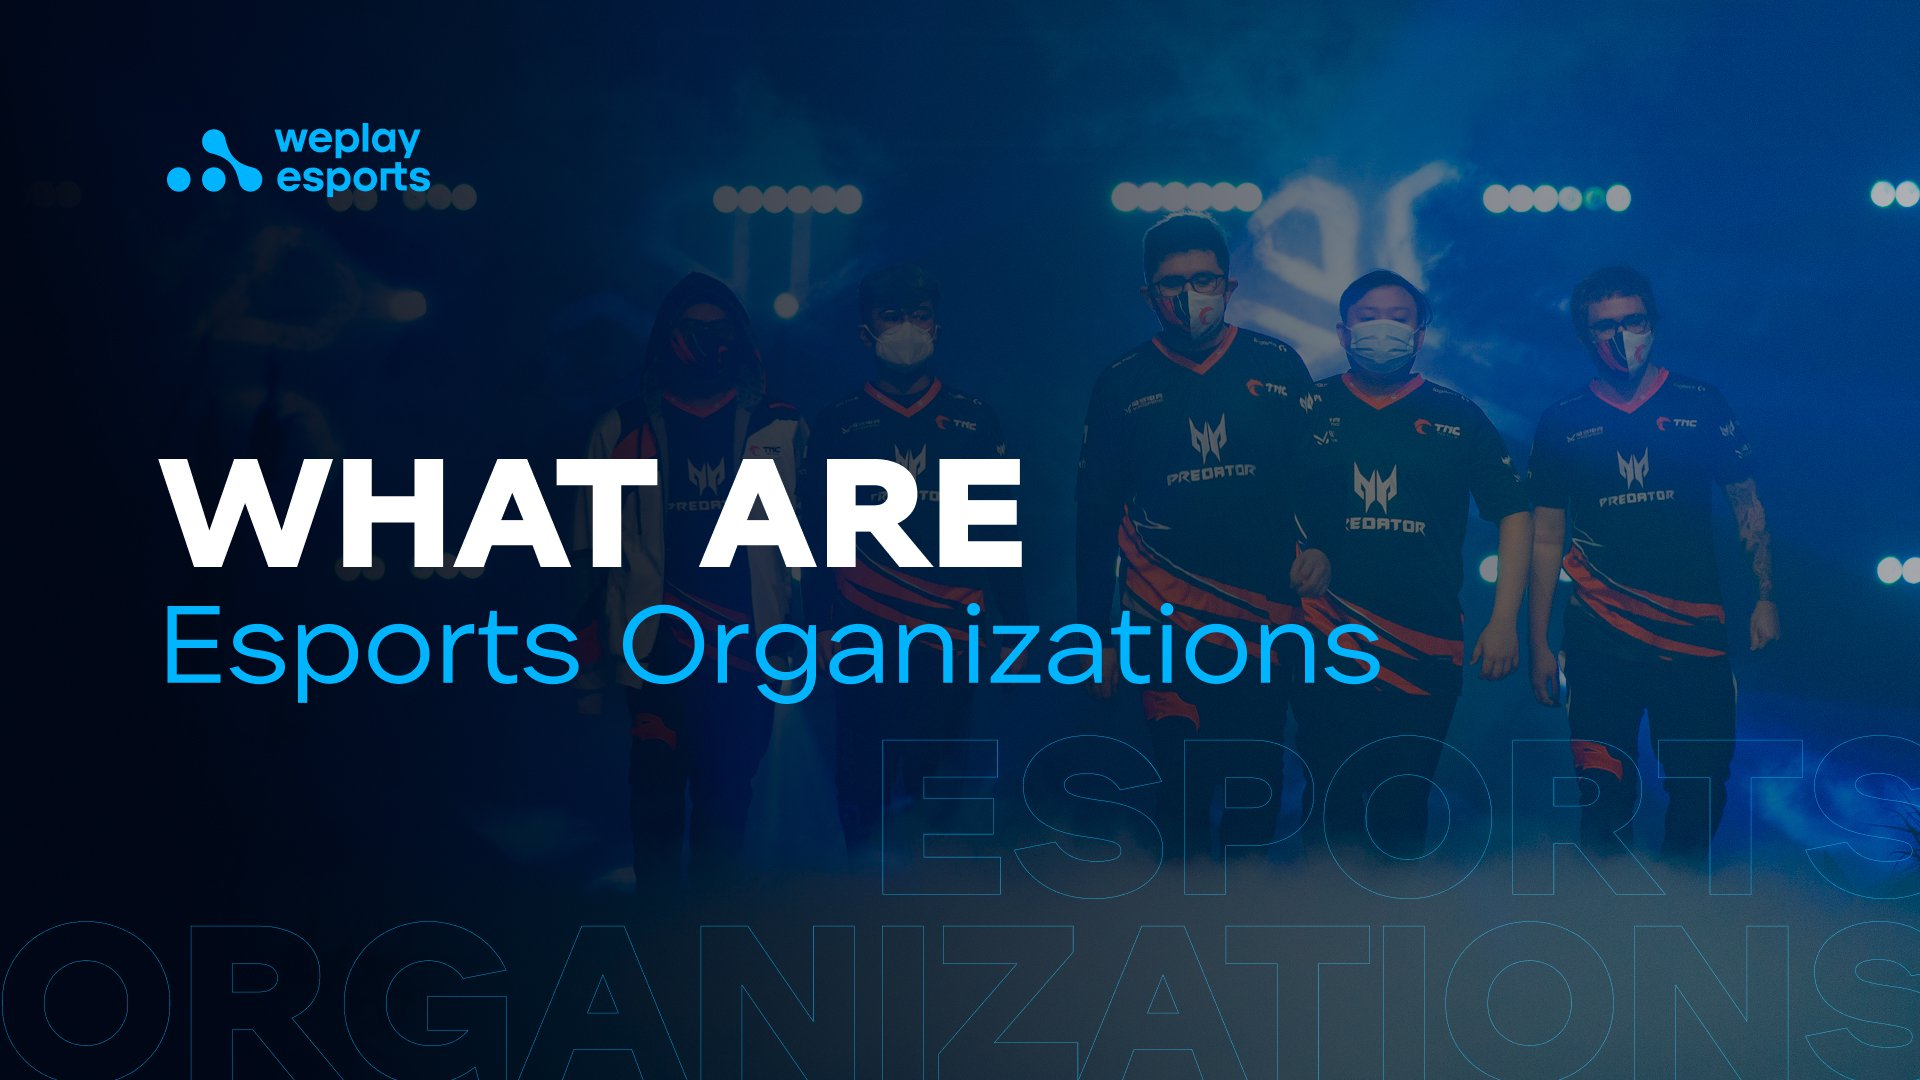 What are Esports Organizations